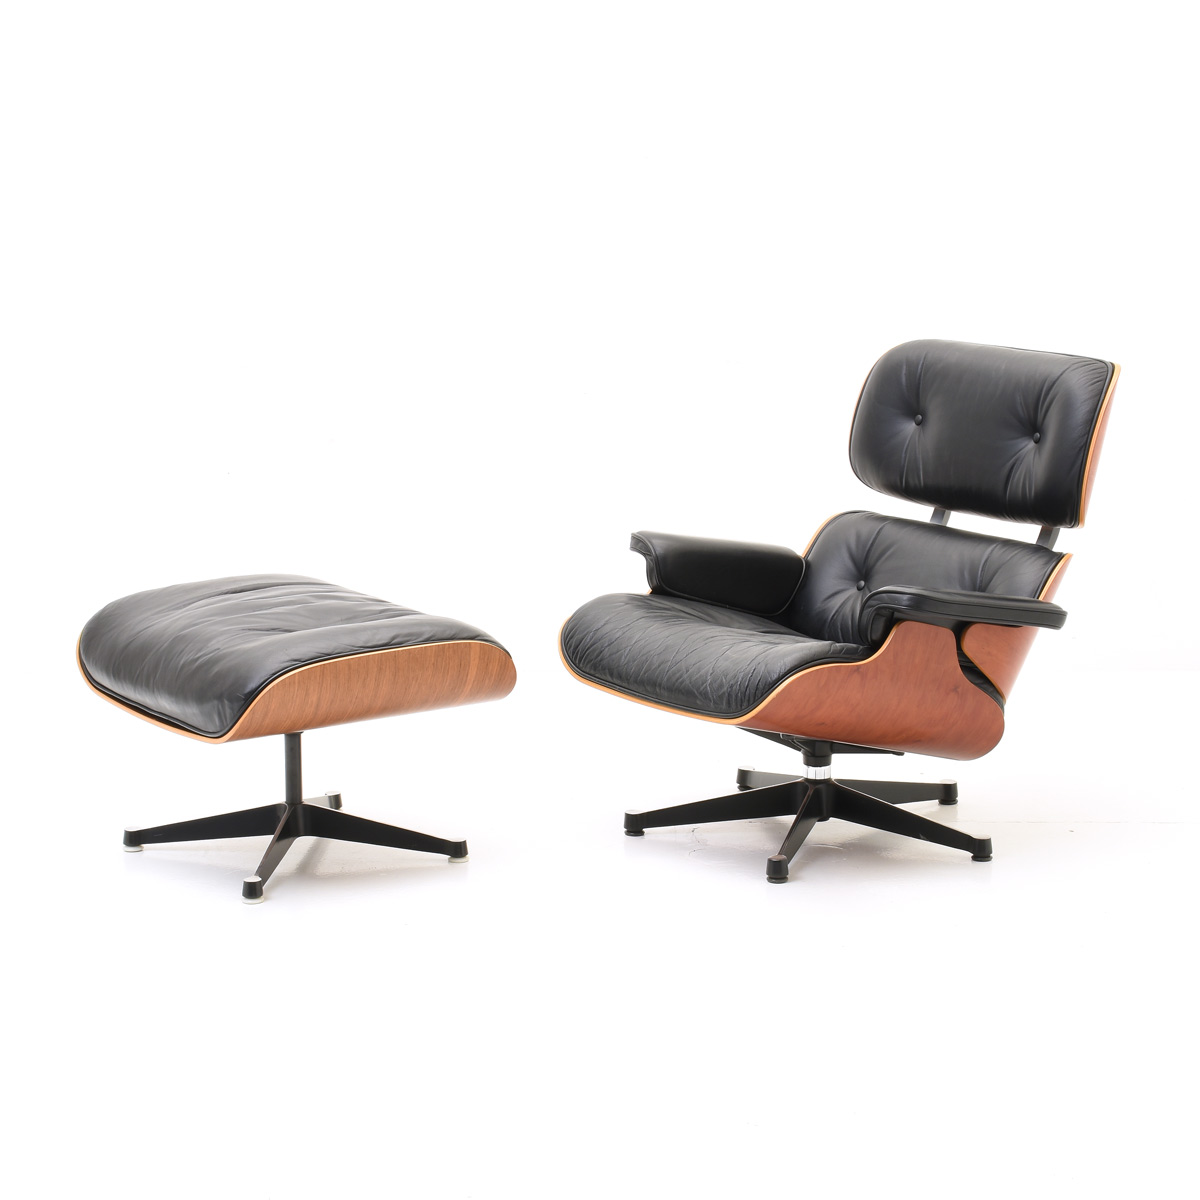 Lounge Chair Vitra Edition - 0